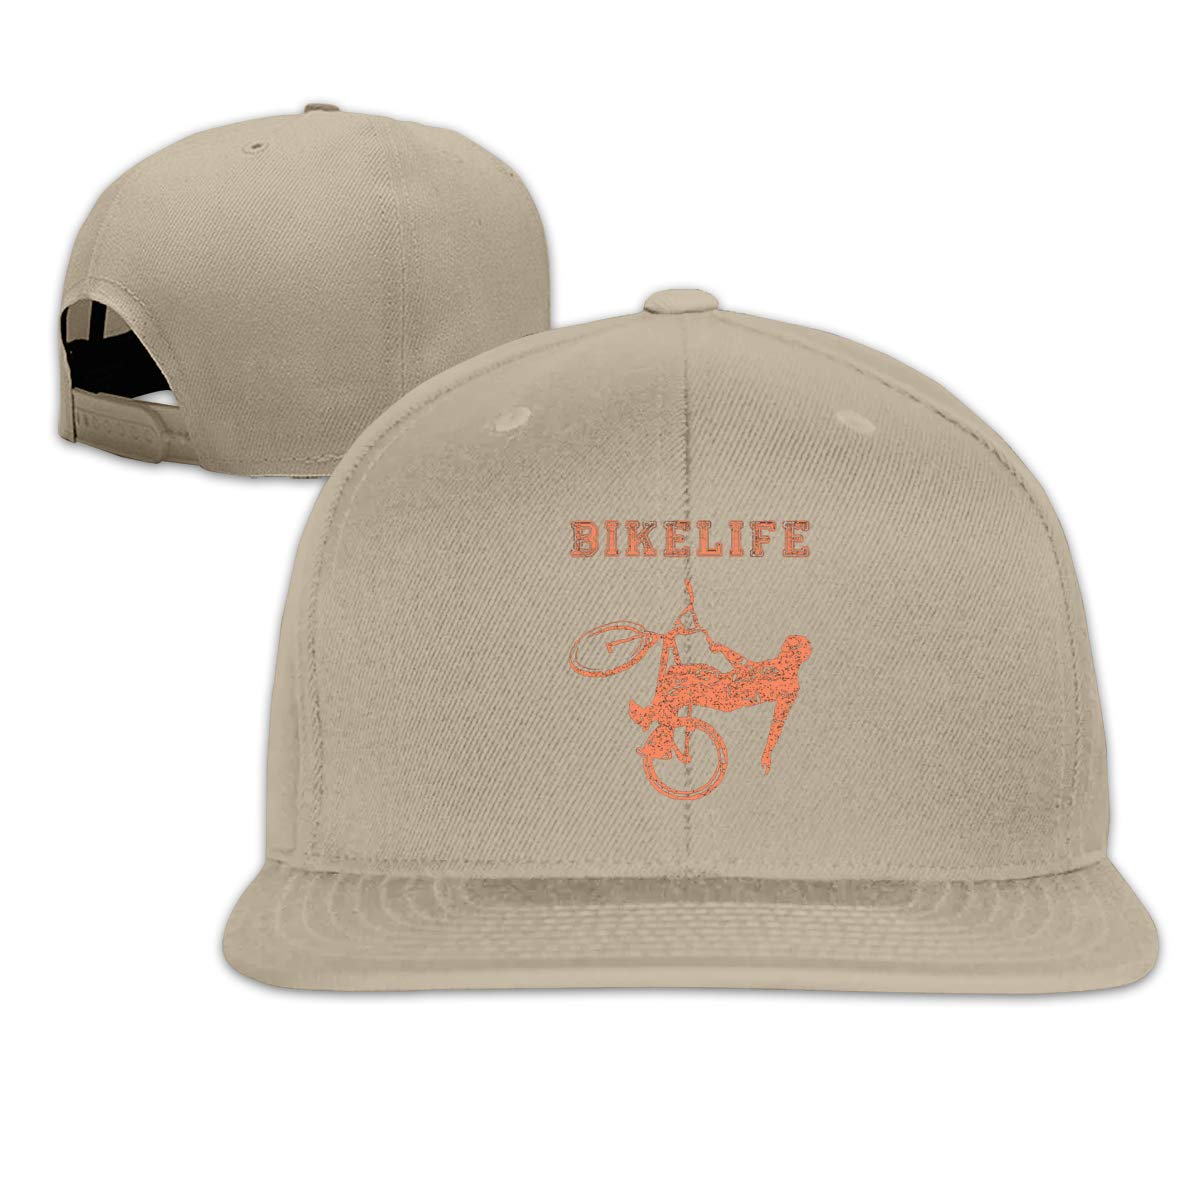 Bike Life Unisex Adult Hats Classic Baseball Caps Sports Hat Peaked Cap